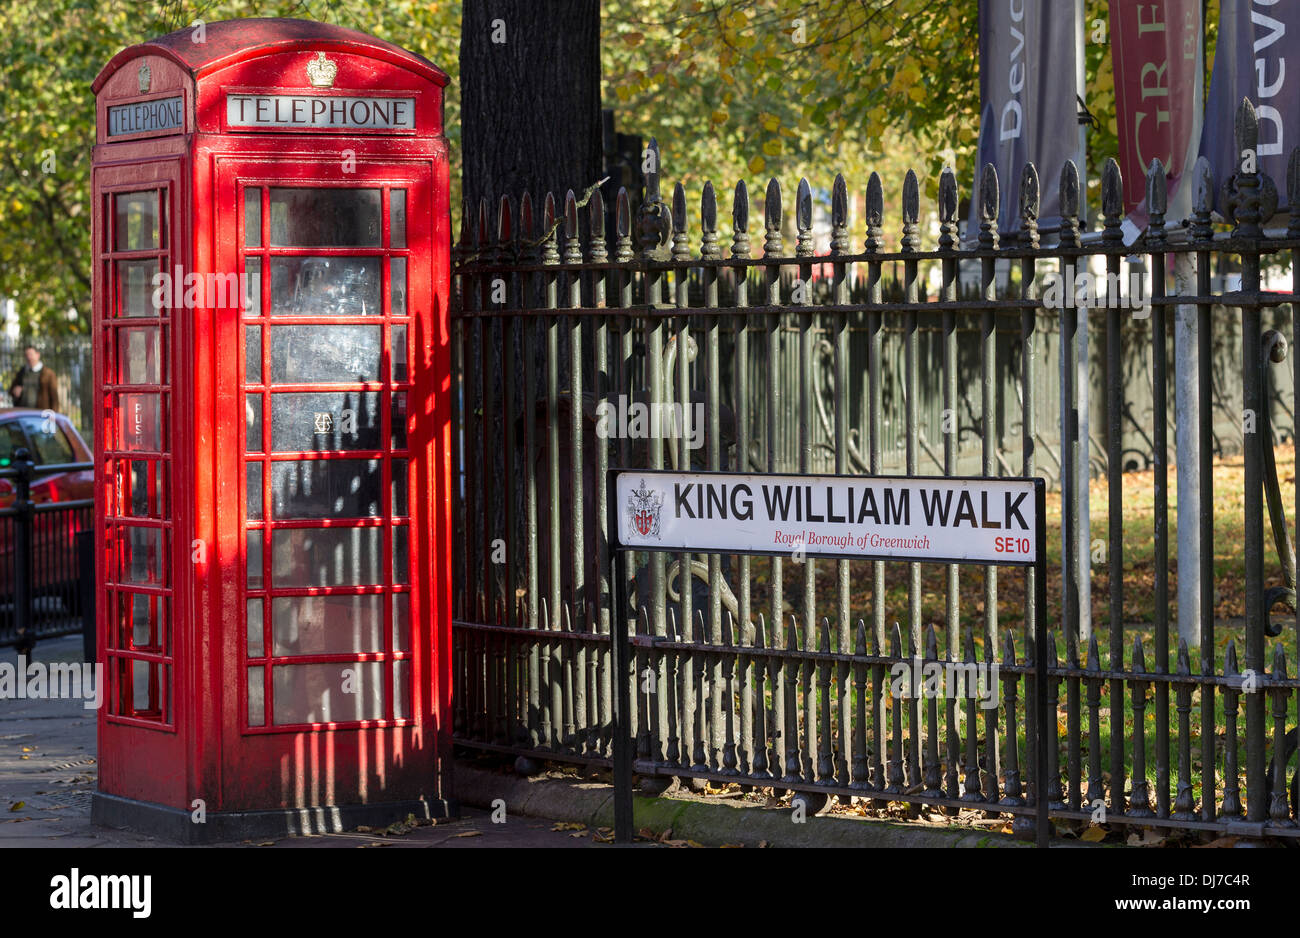 A traditional red telephone box against a iron railing in King William Walk, Greenwich, London - Stock Image